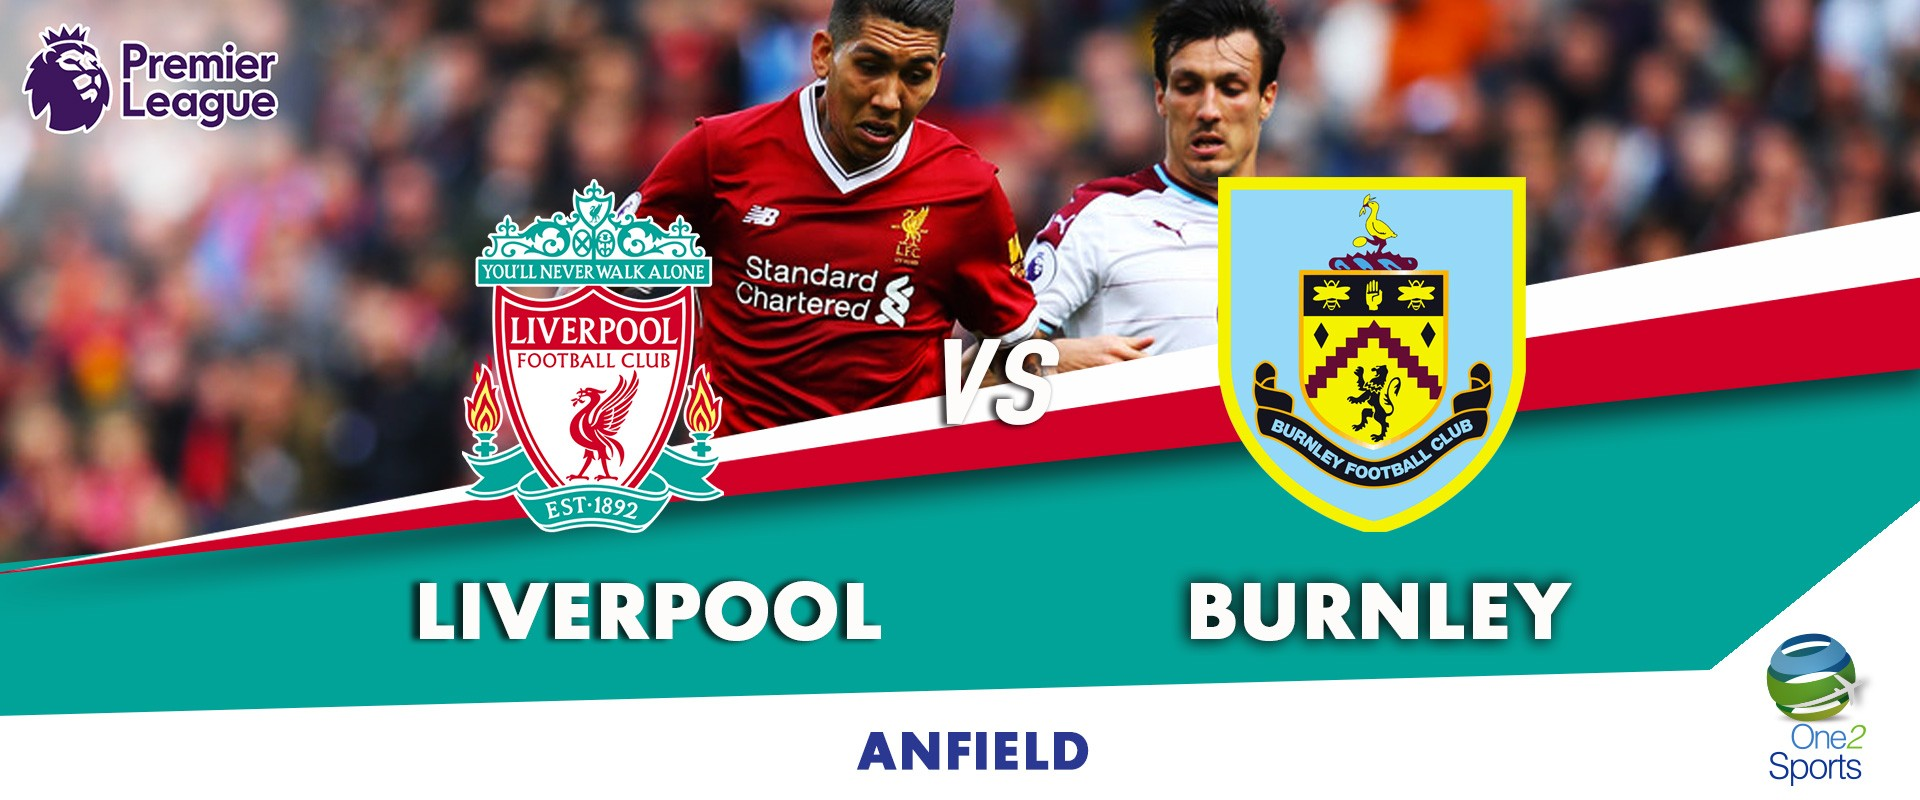 Liverpool vs Burnley